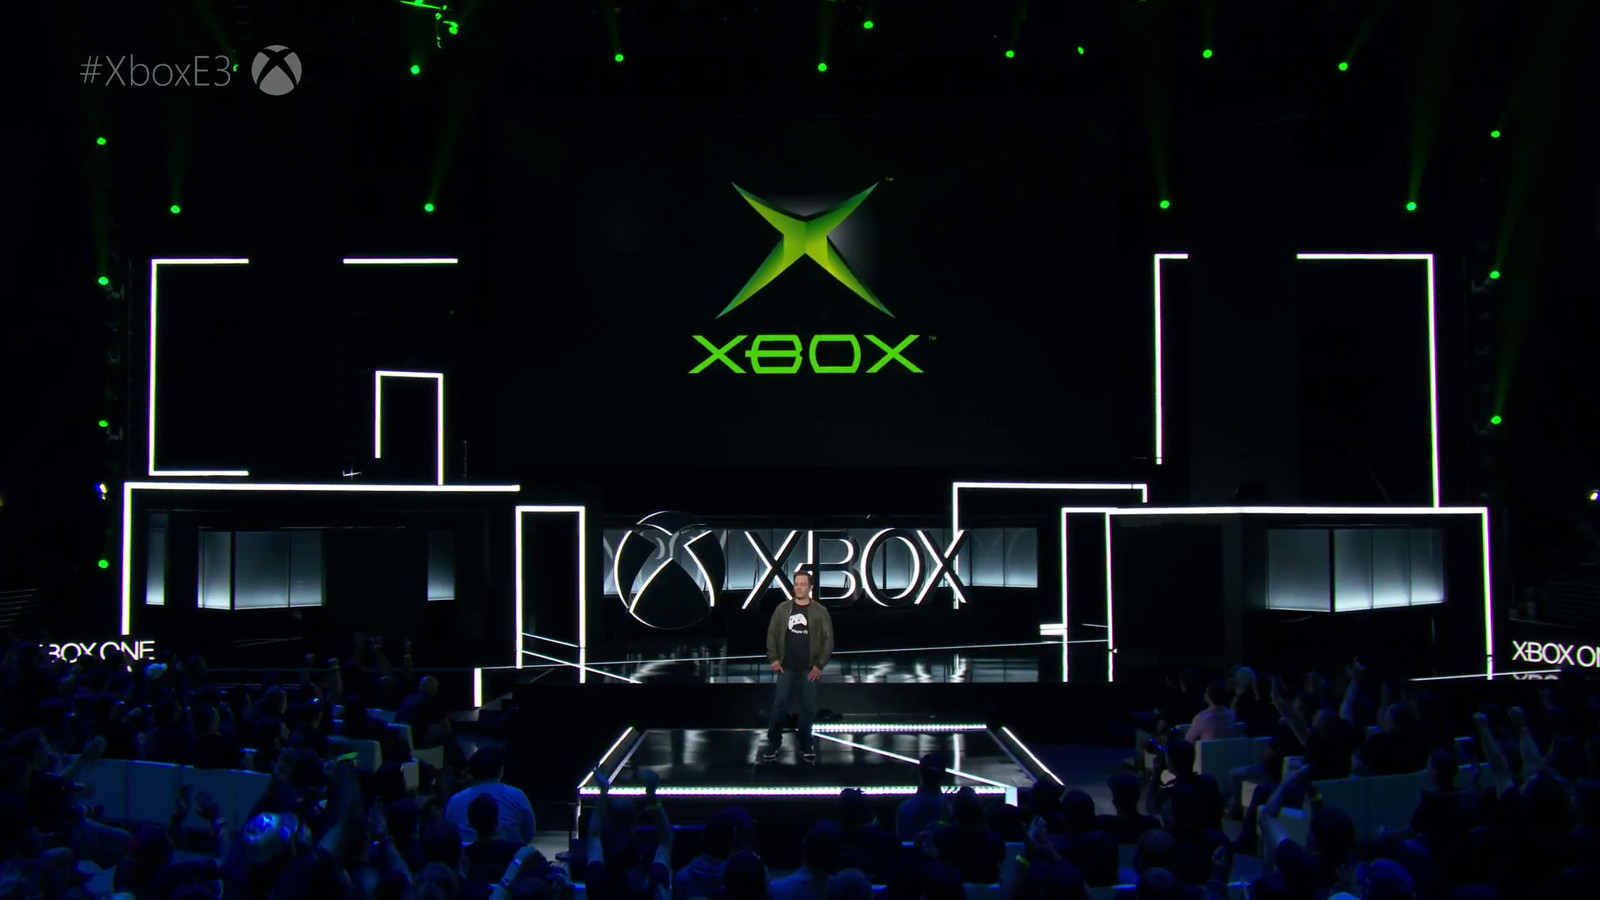 New Xbox Console Coming Out